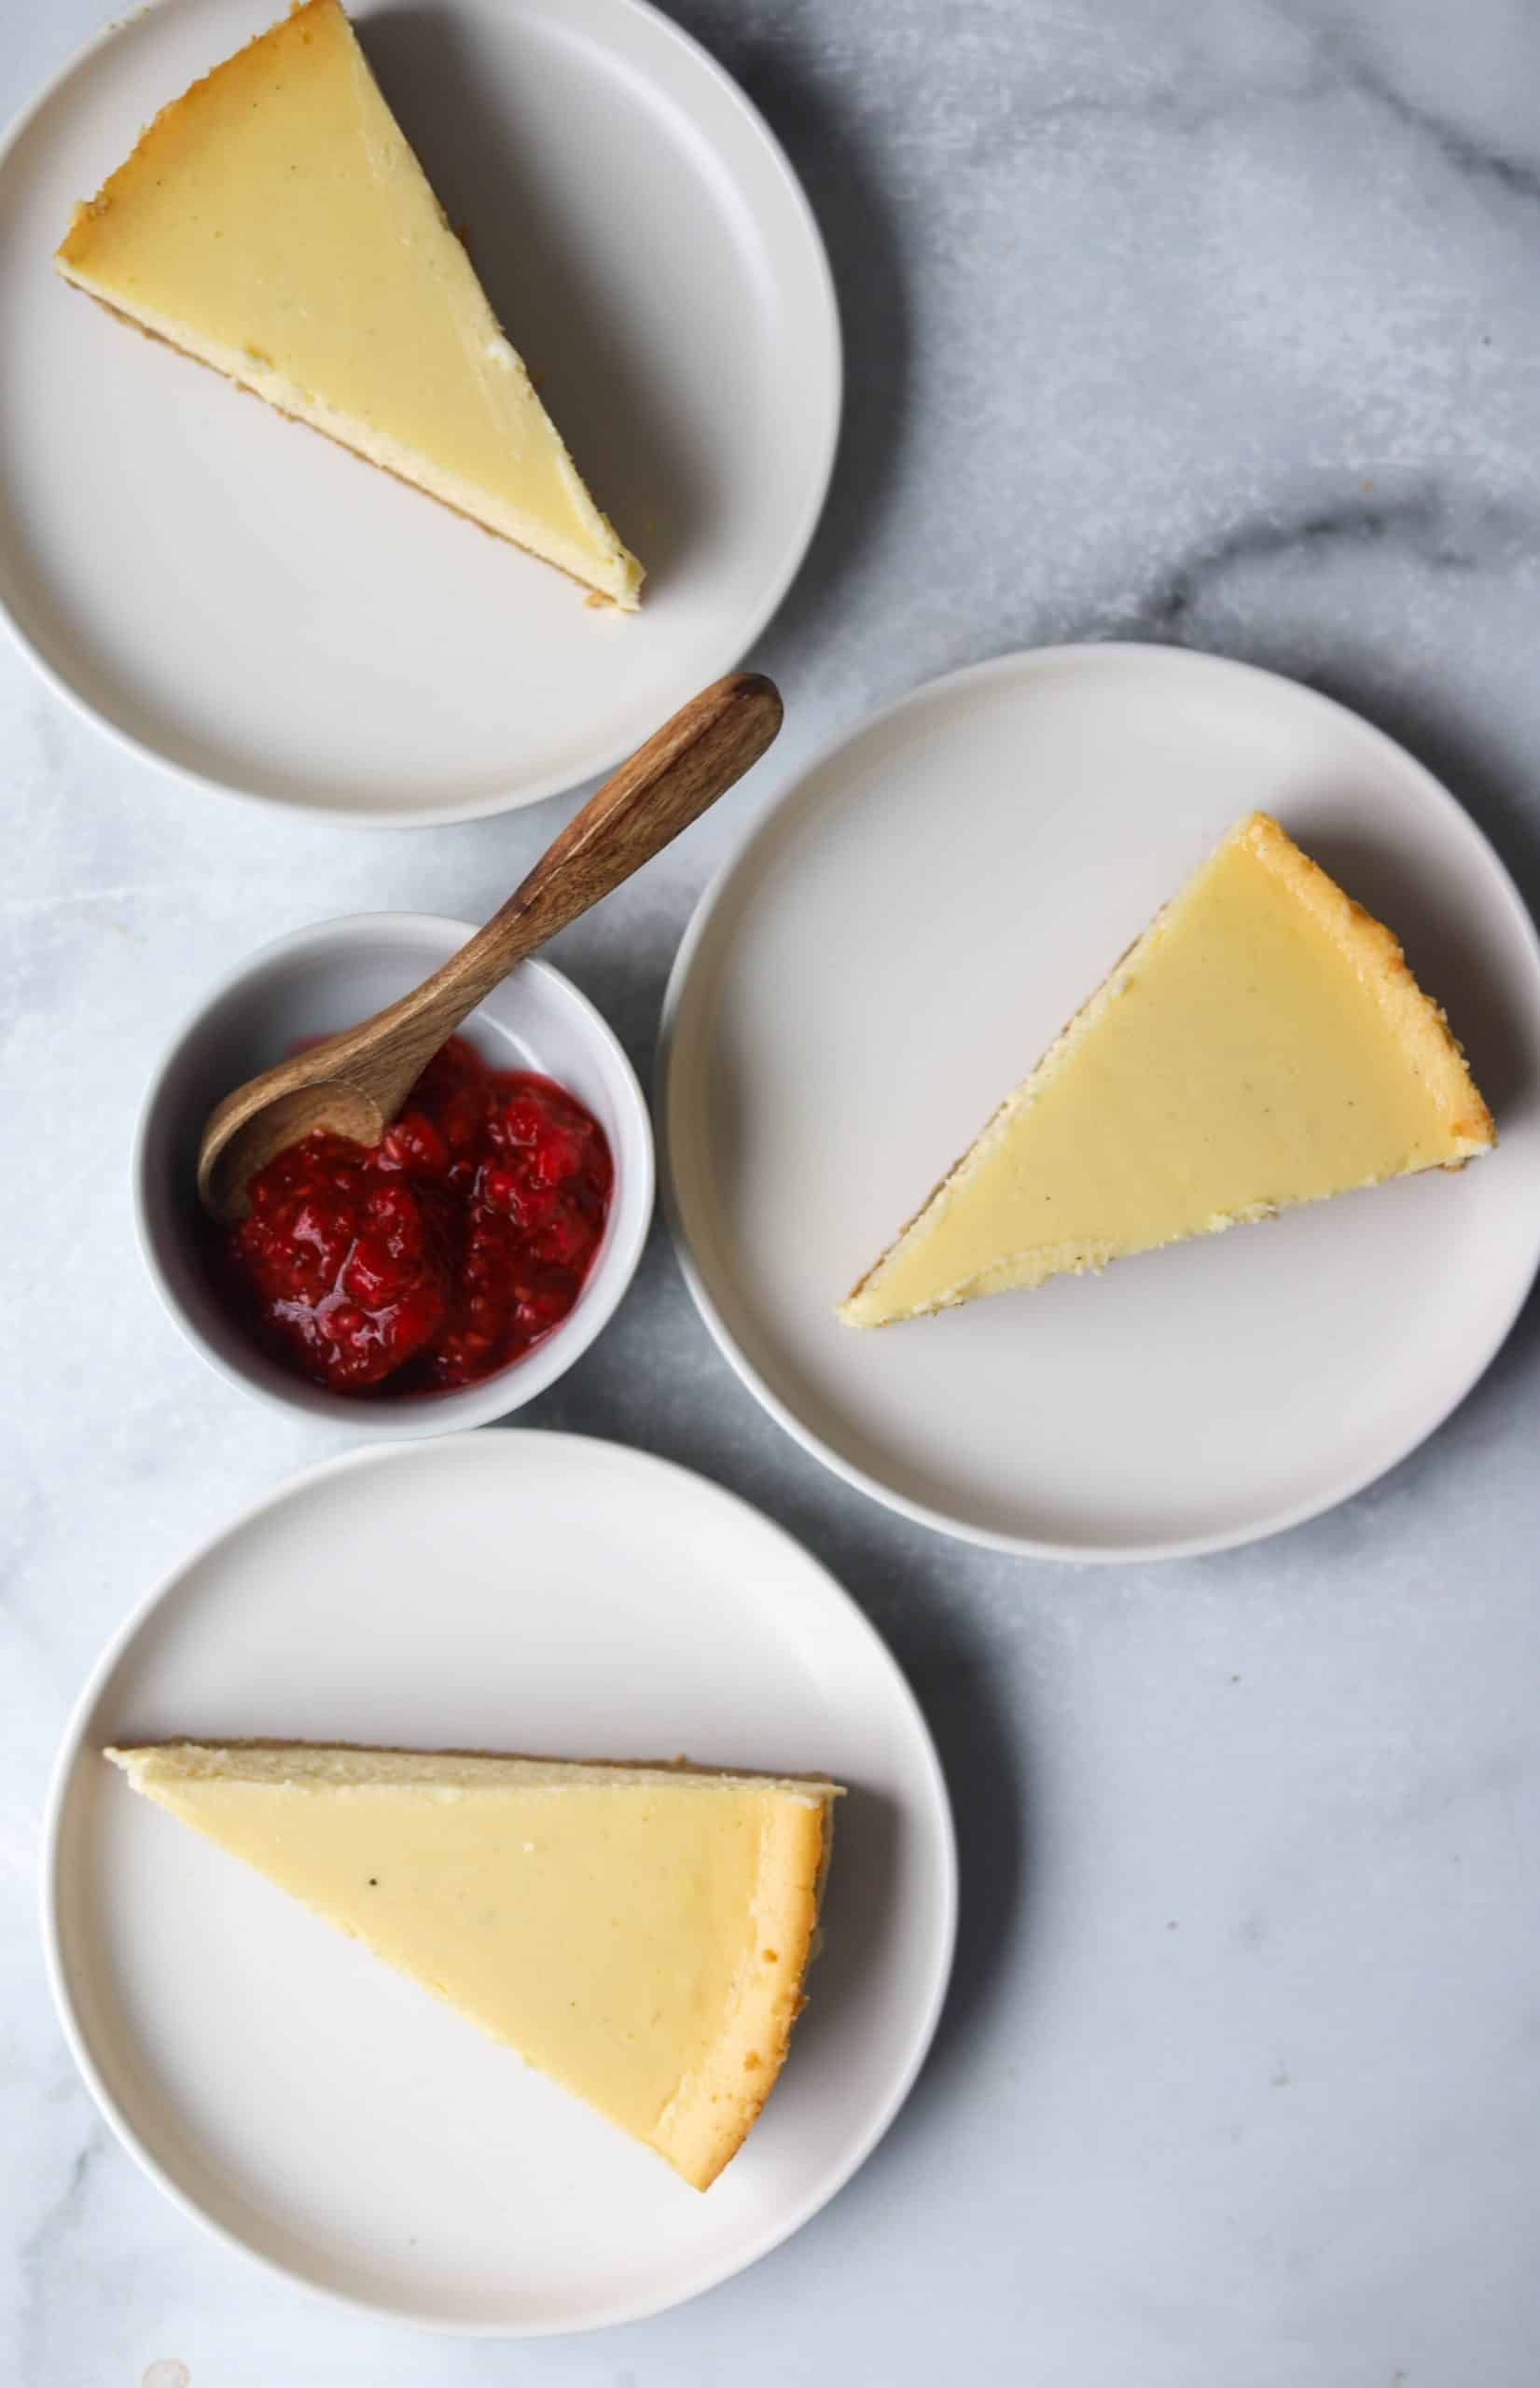 Slices of cheesecake on a plate with a small bowl of raspberries.